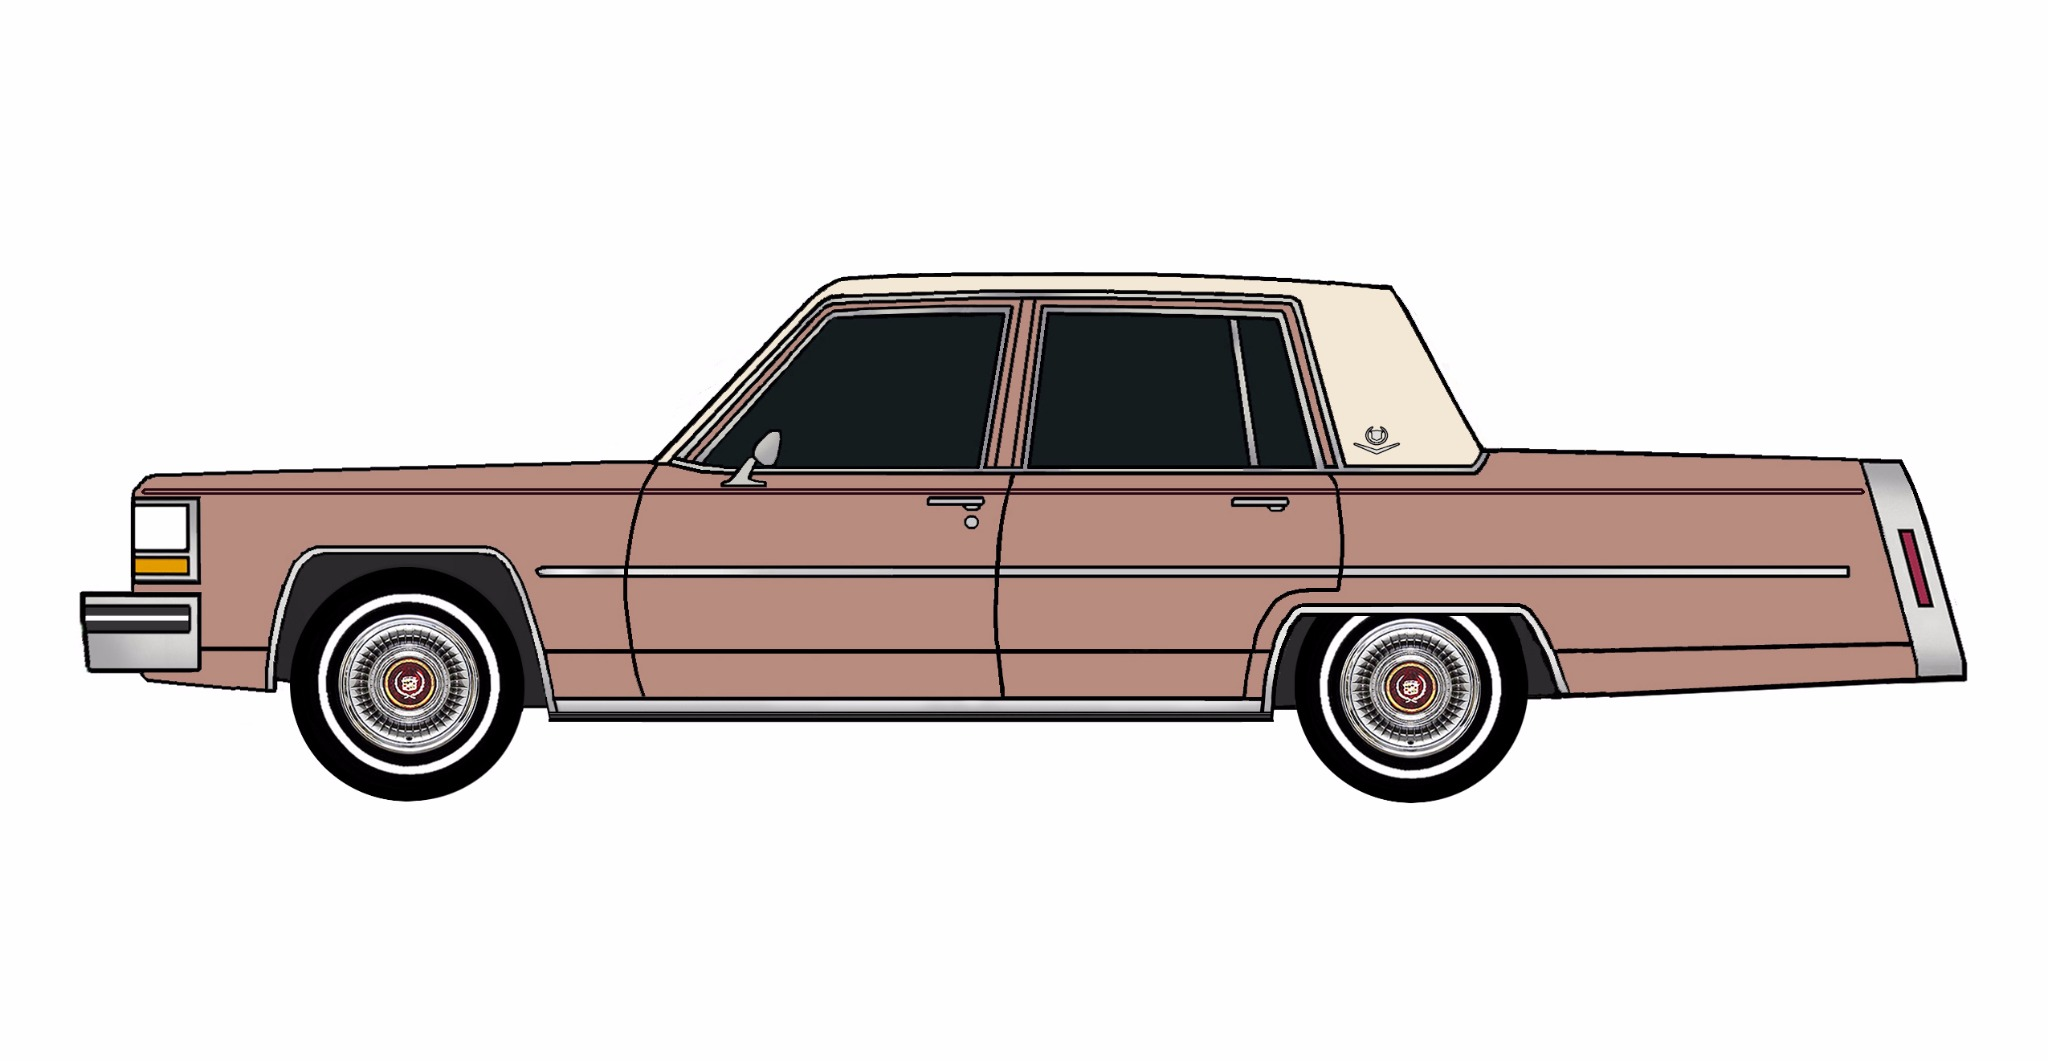 1981 Cadillac Deville CLAY ROSE